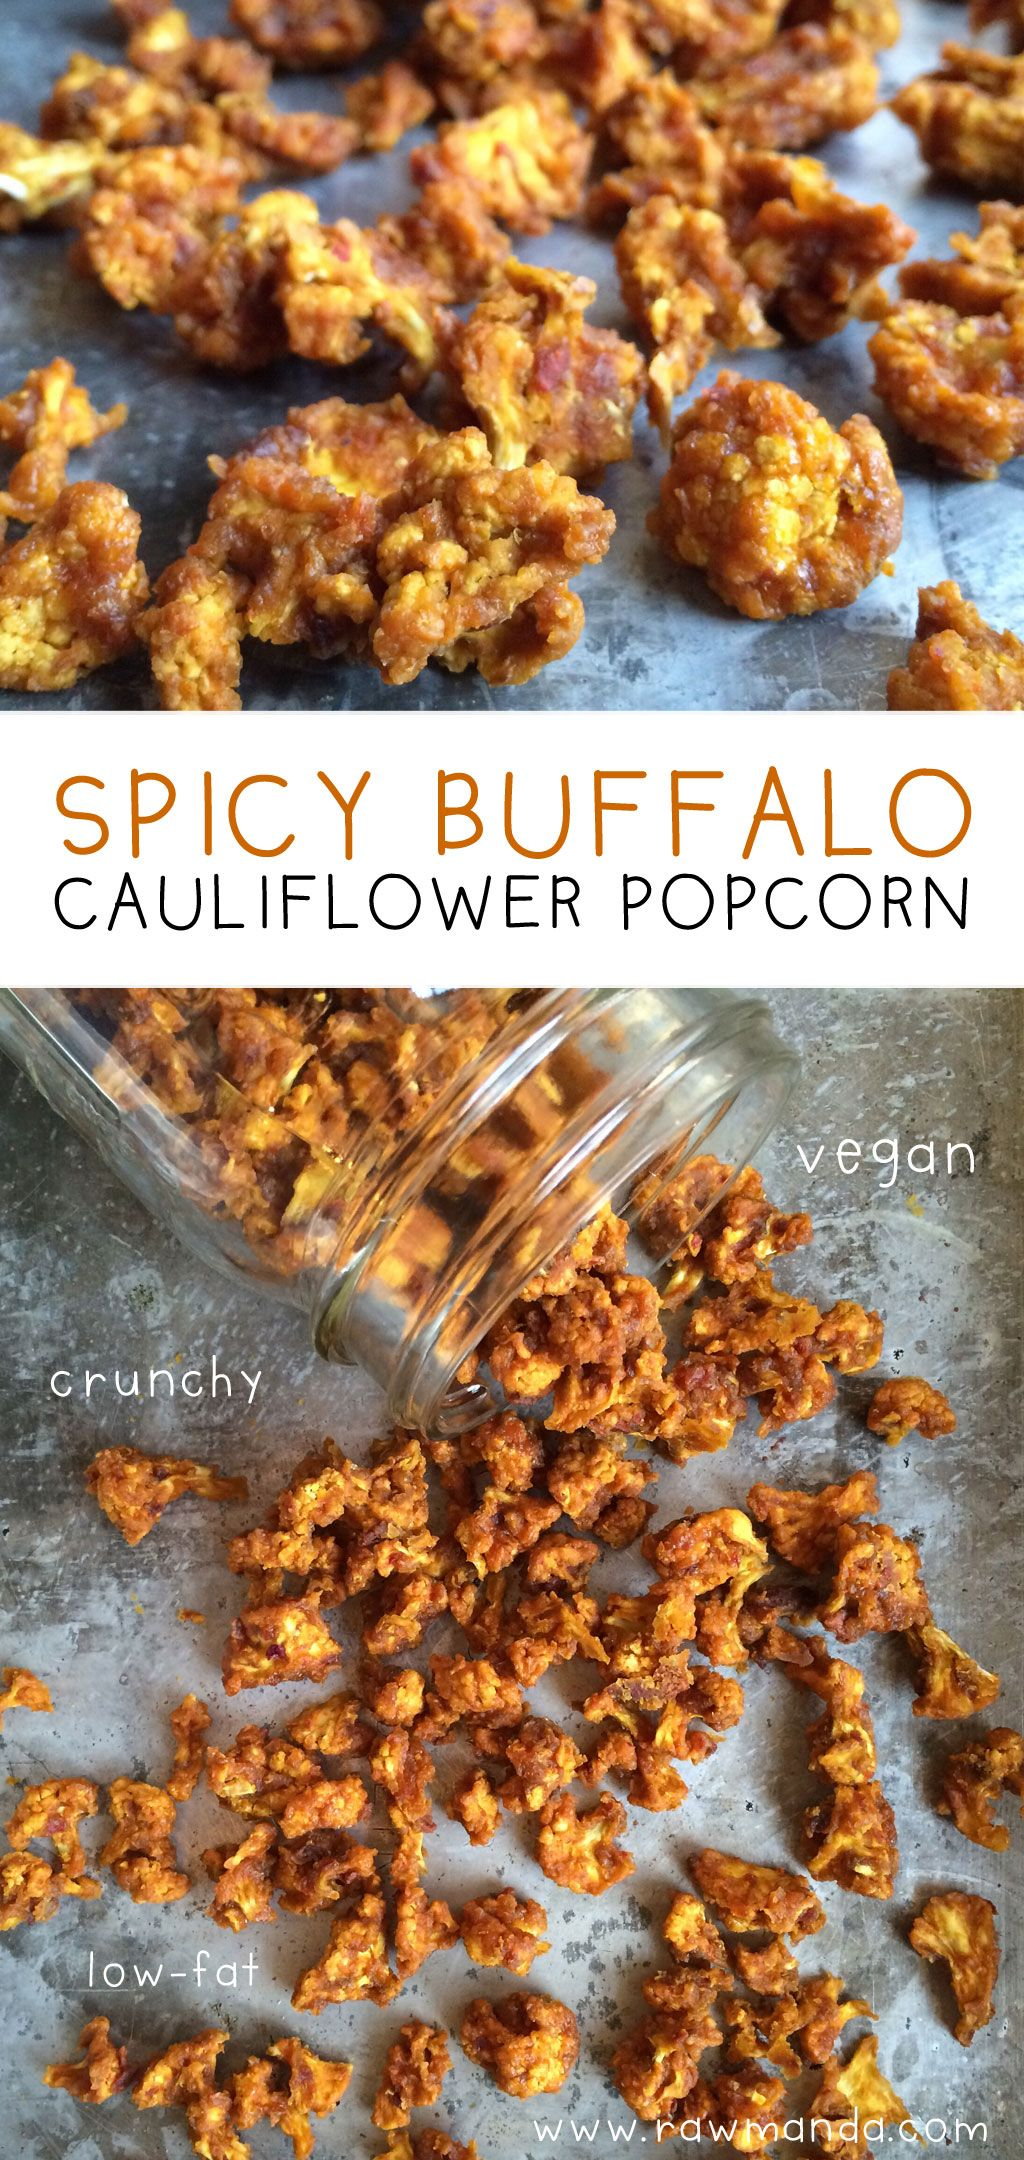 Spicy Buffalo Cauliflower Popcorn